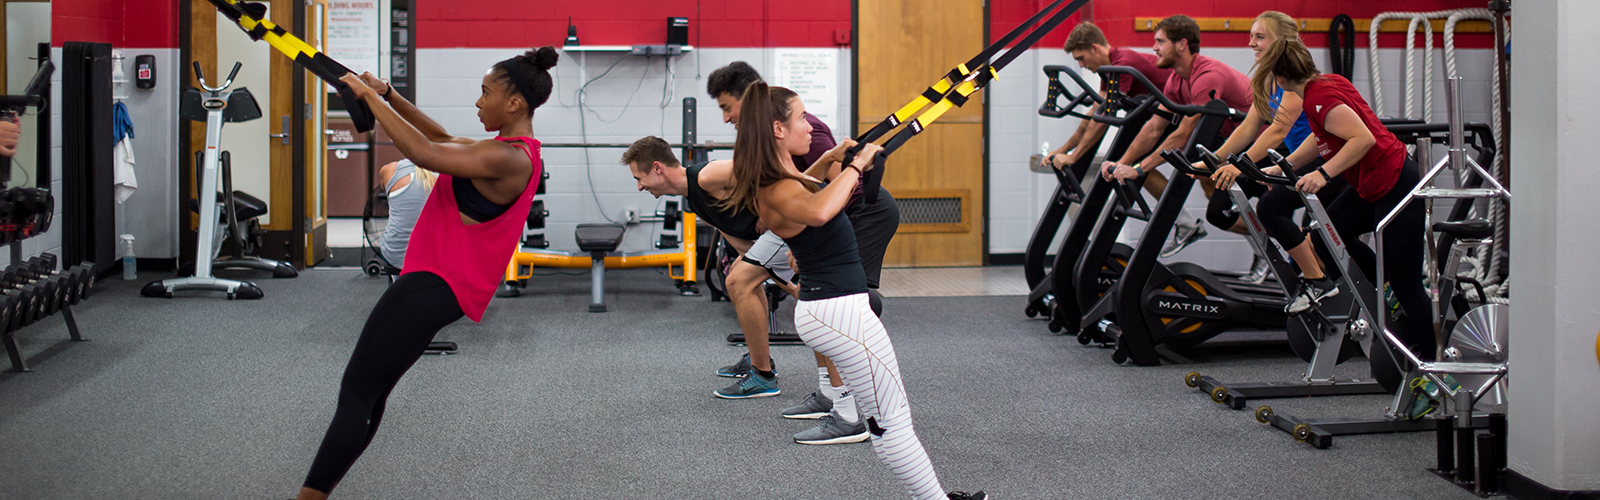 Photo of a group of people performing various TRX and cardio exercises in an indoor weight room